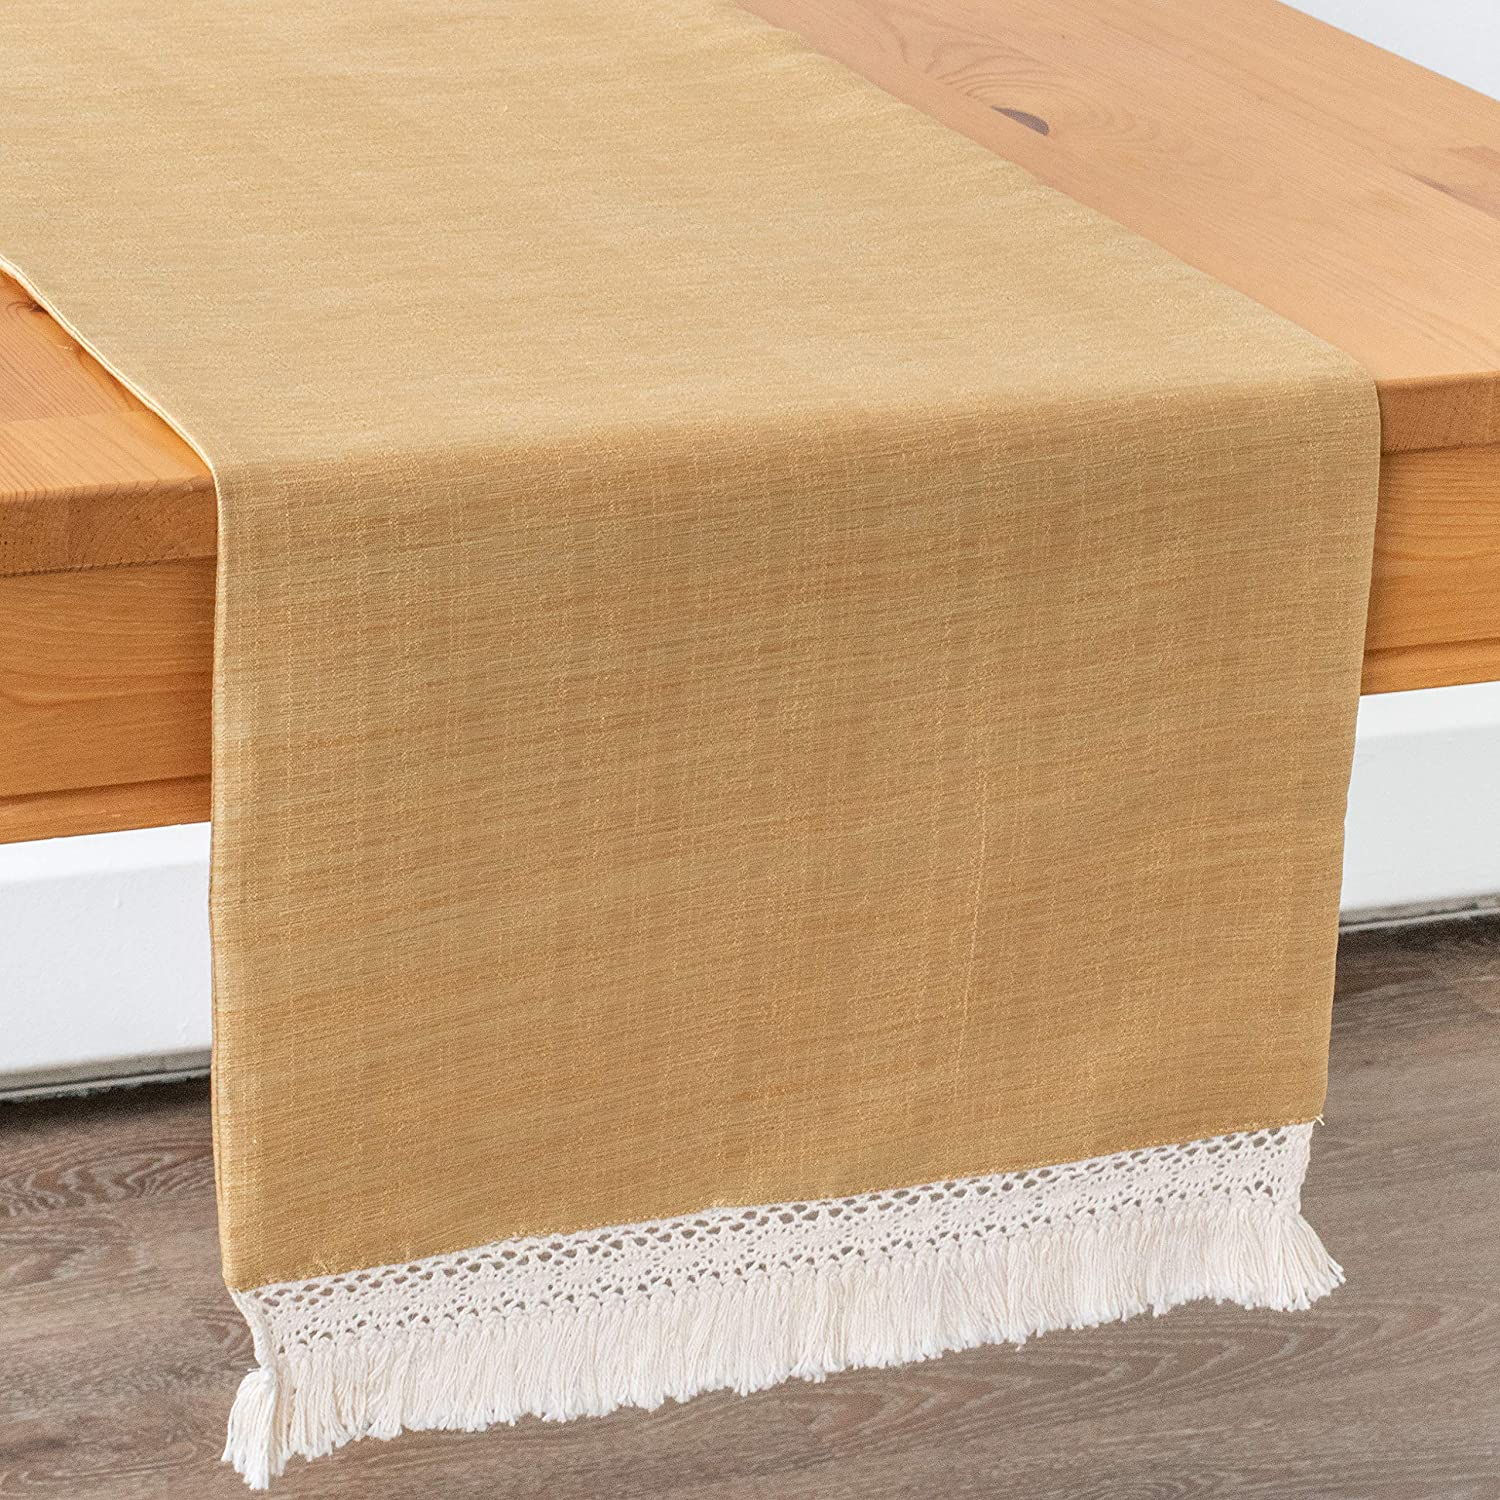 Gold Dining Table Runners With Macrame Lace Boho Decor (13x120 inch, Pack of 1) Fabric Lined   Properly Finished, No Fray Edges   for Home, Kitchen, Dining Room, Holiday, Wedding Party